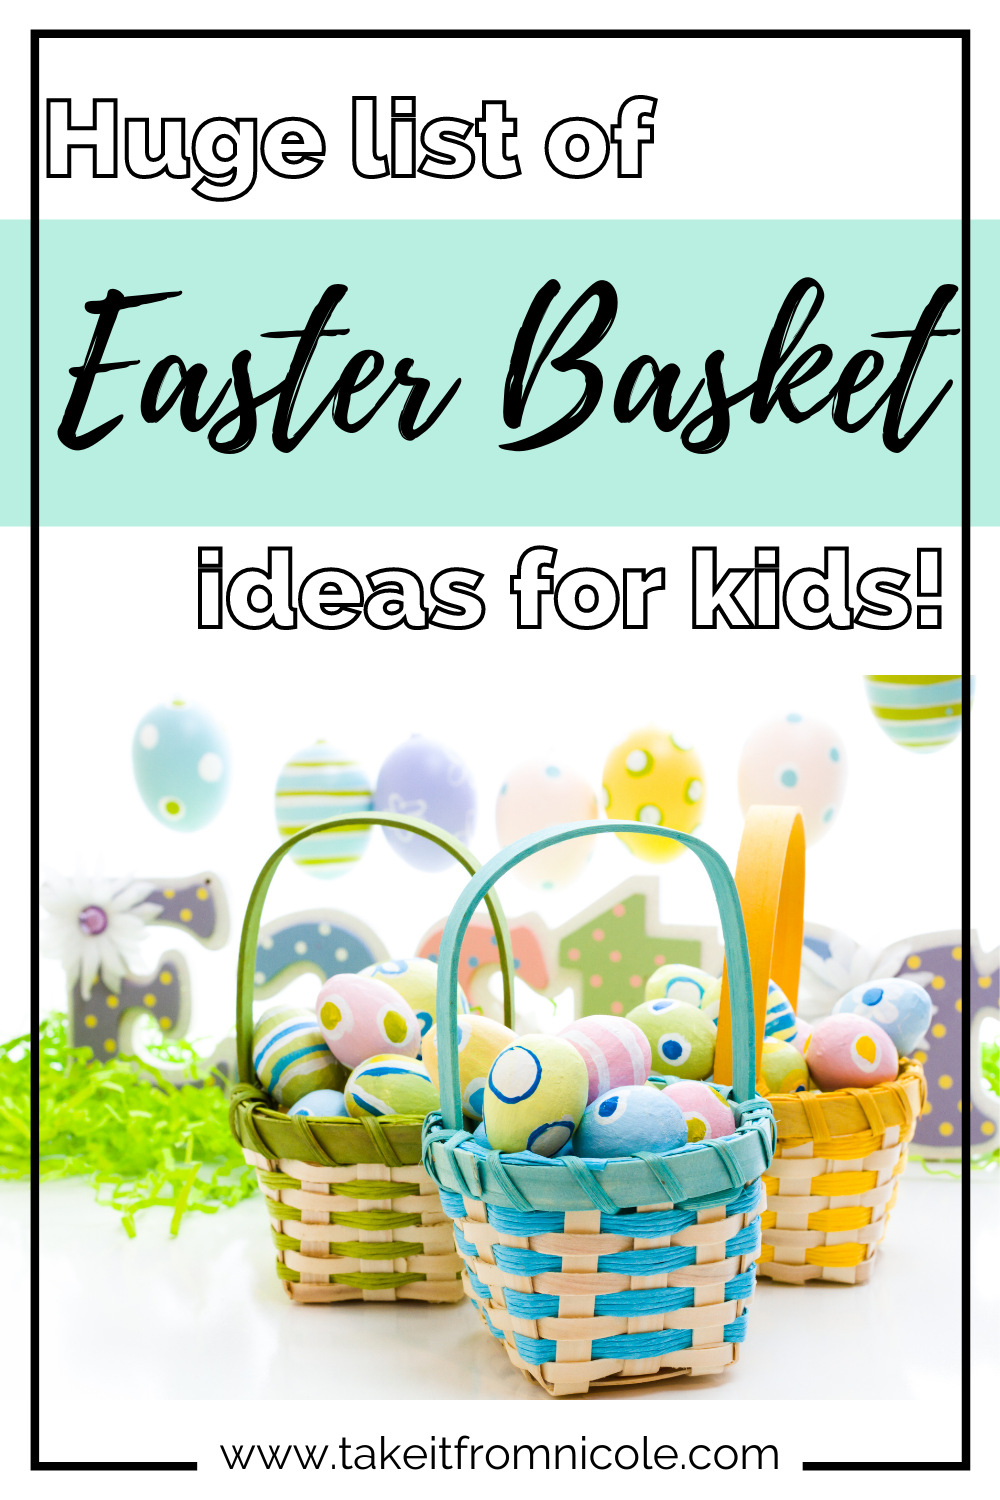 The ULTIMATE list of ideas for Easter Basket fillers for little kids. Junk free ideas that moms and kids will love.